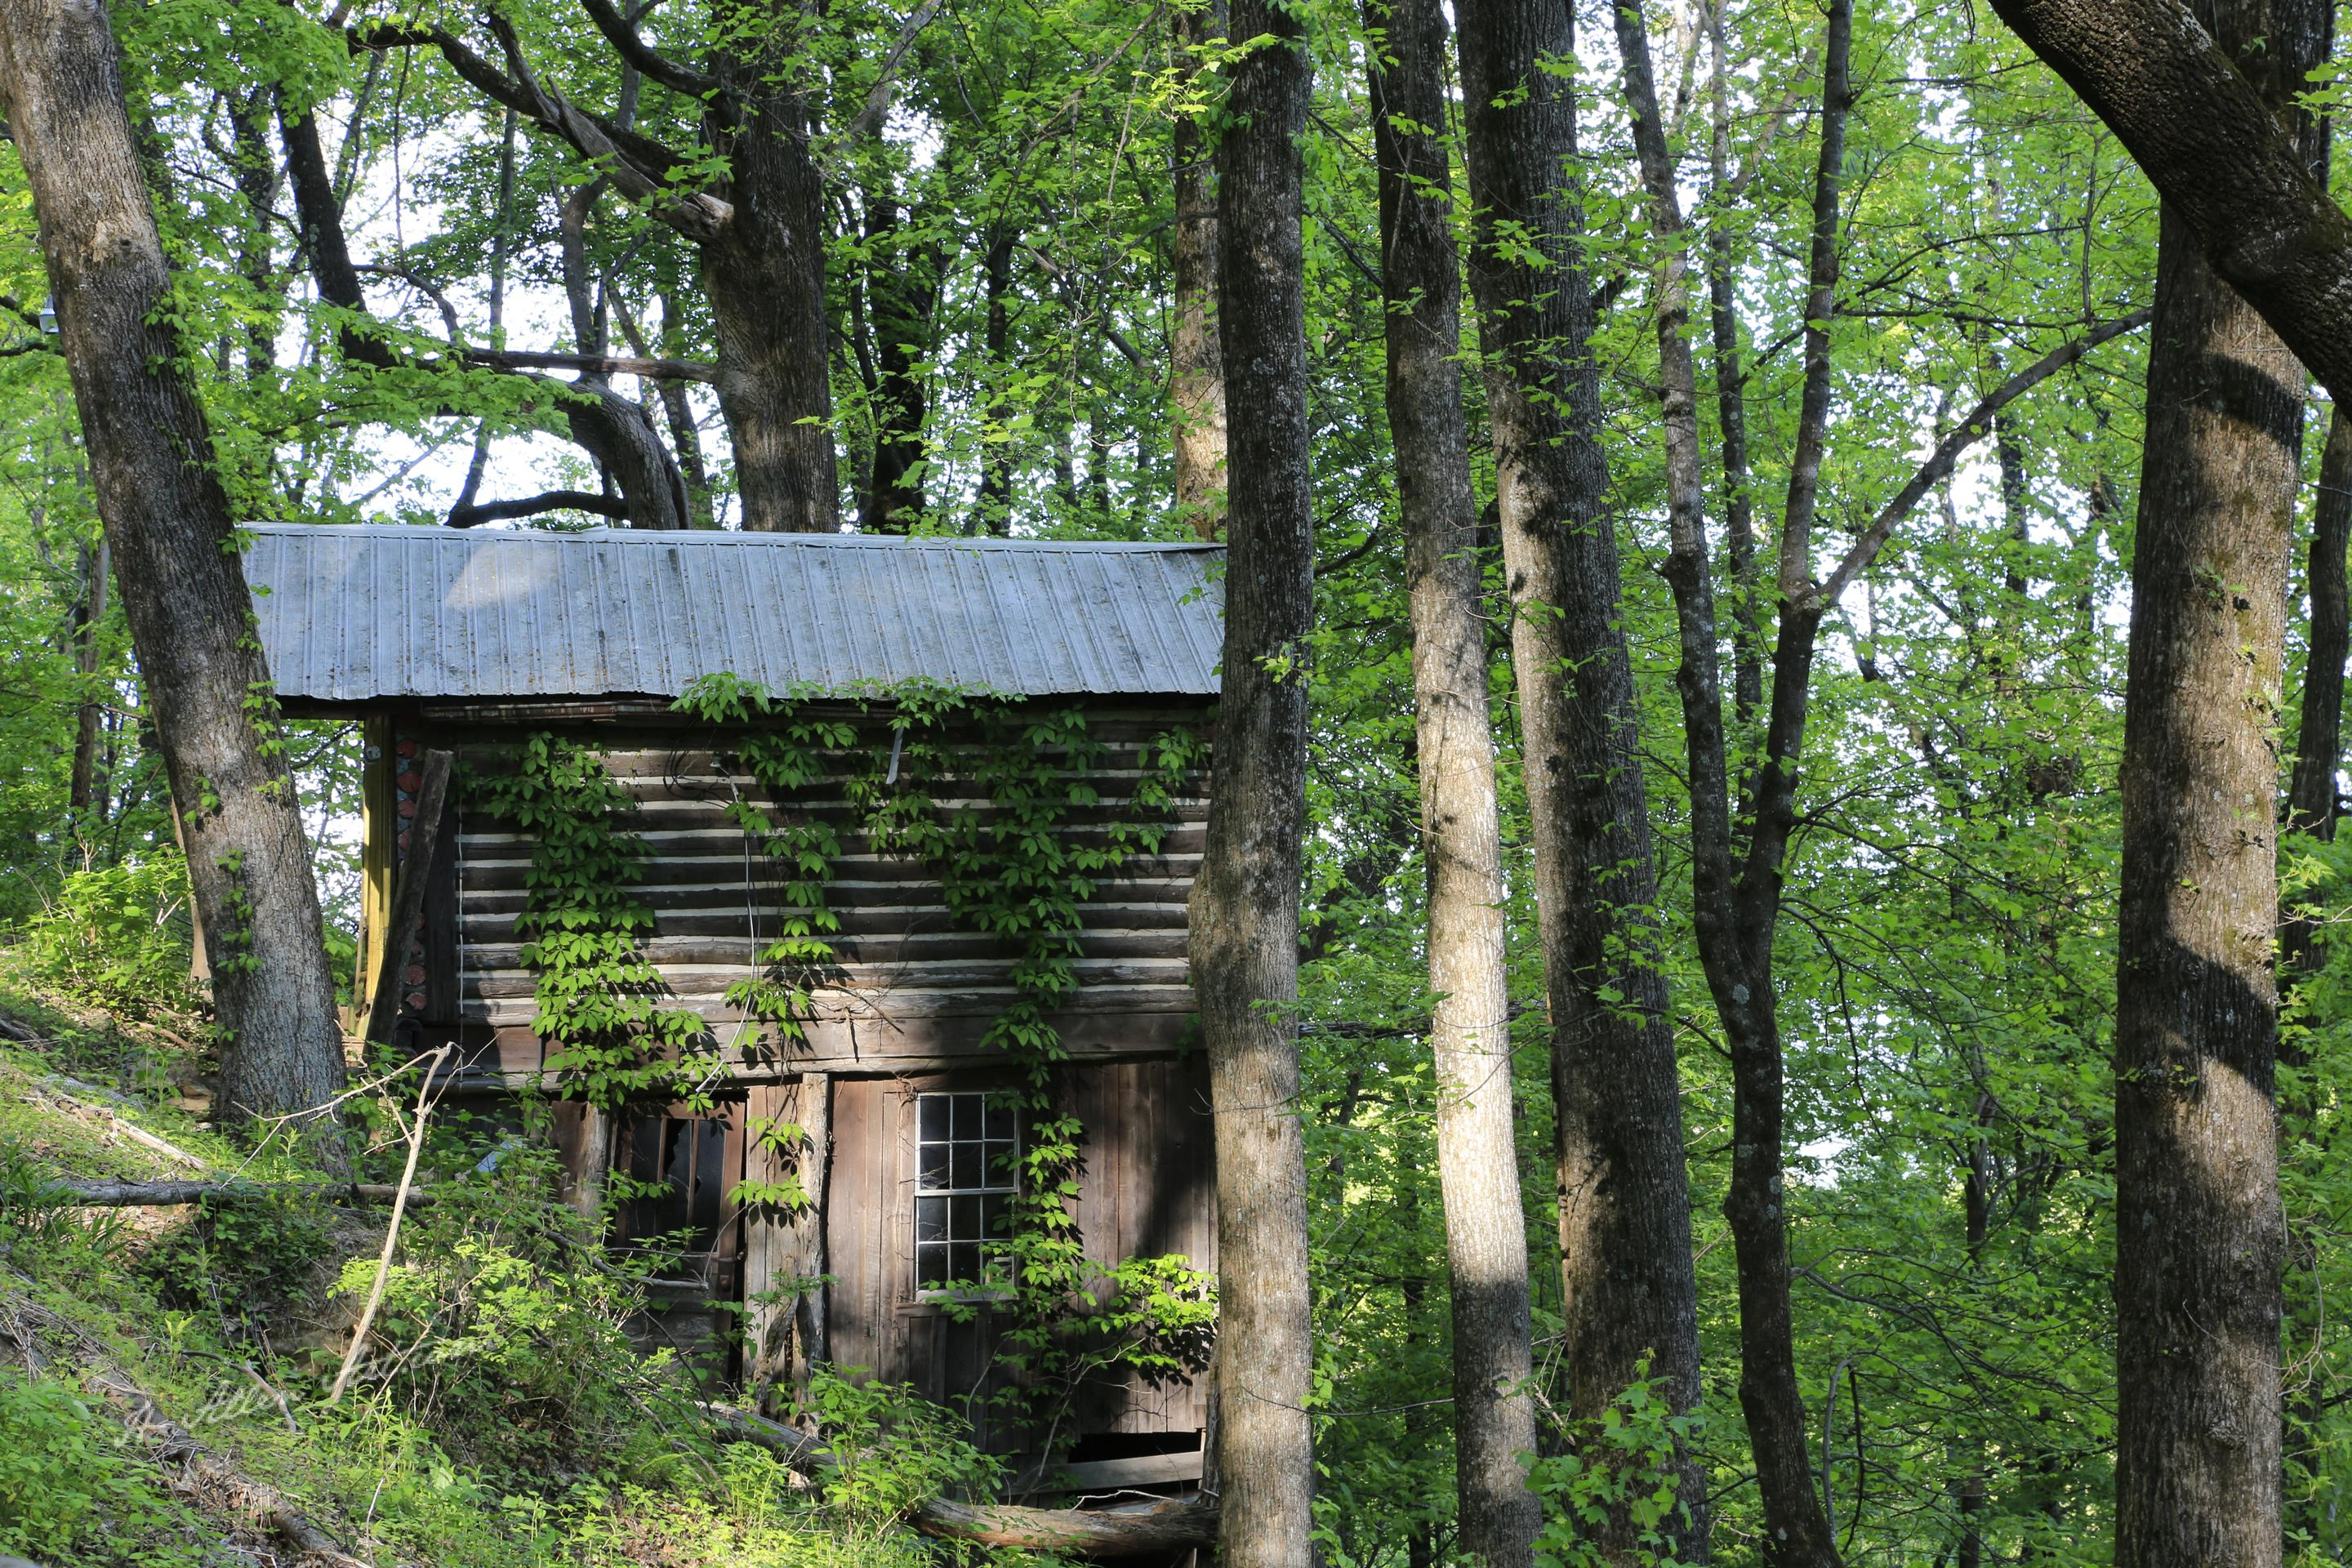 Cabin in the Woods, Wildacres, Blue Ridge Parkway, Little Switzerland, NC